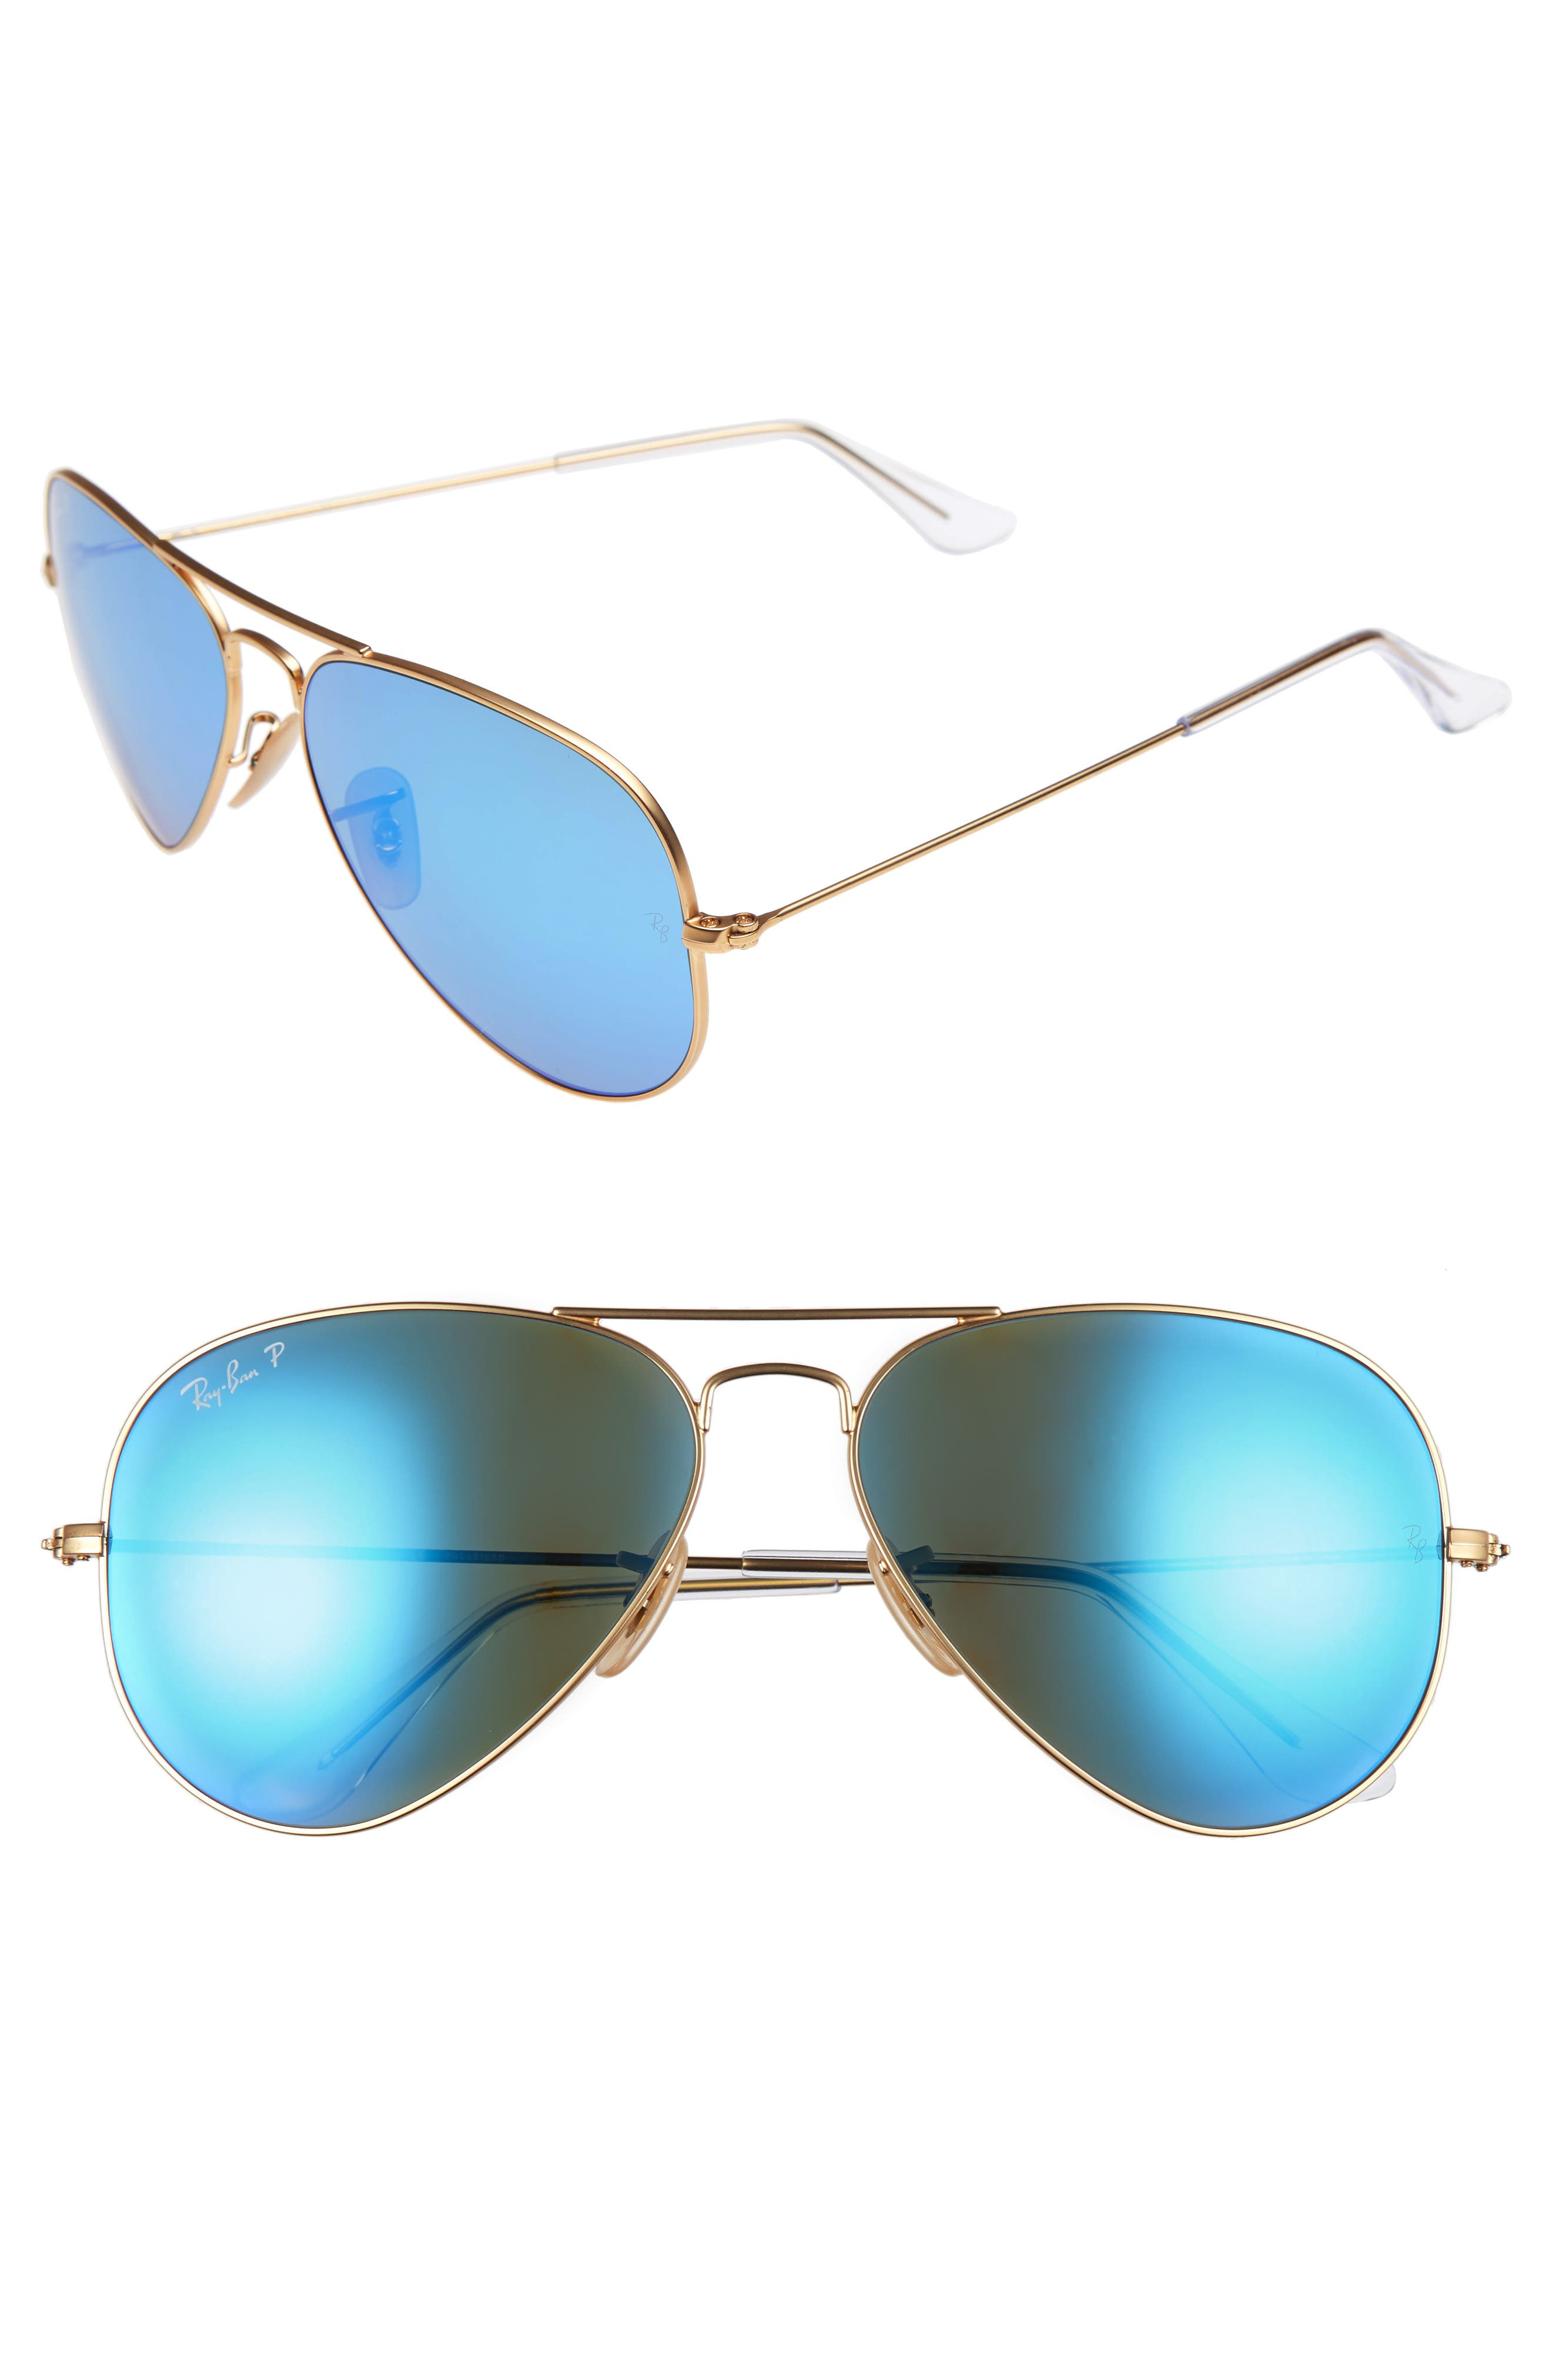 58mm Polarized Aviator Sunglasses,                             Main thumbnail 1, color,                             Matte Gold/ Blue Mirror